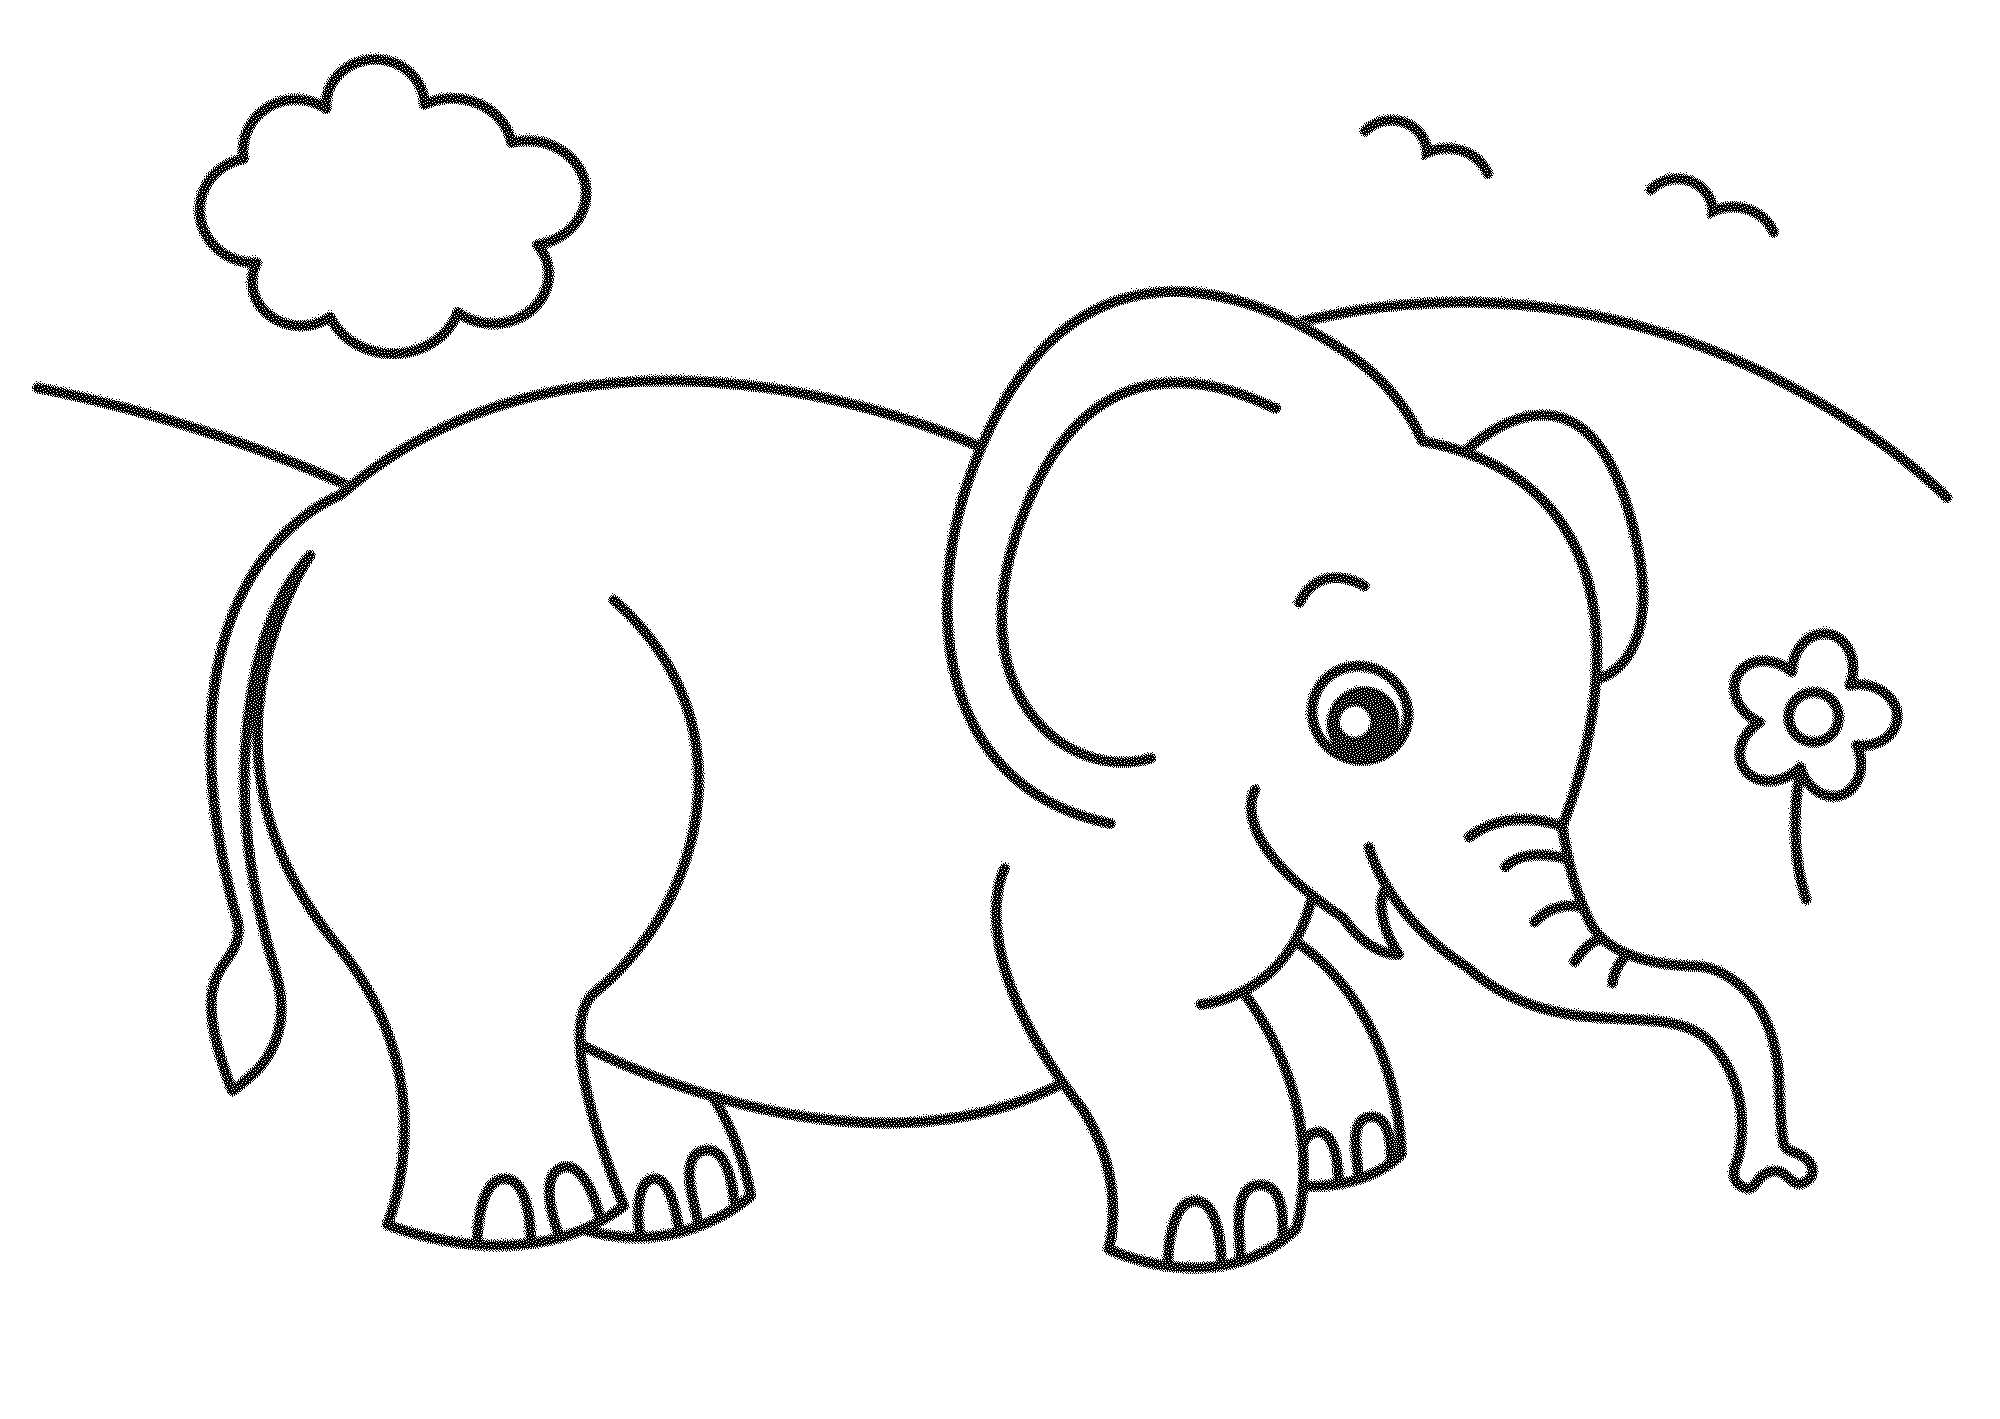 elephant coloring sheets printable elephants to print for free elephants kids coloring pages sheets printable elephant coloring